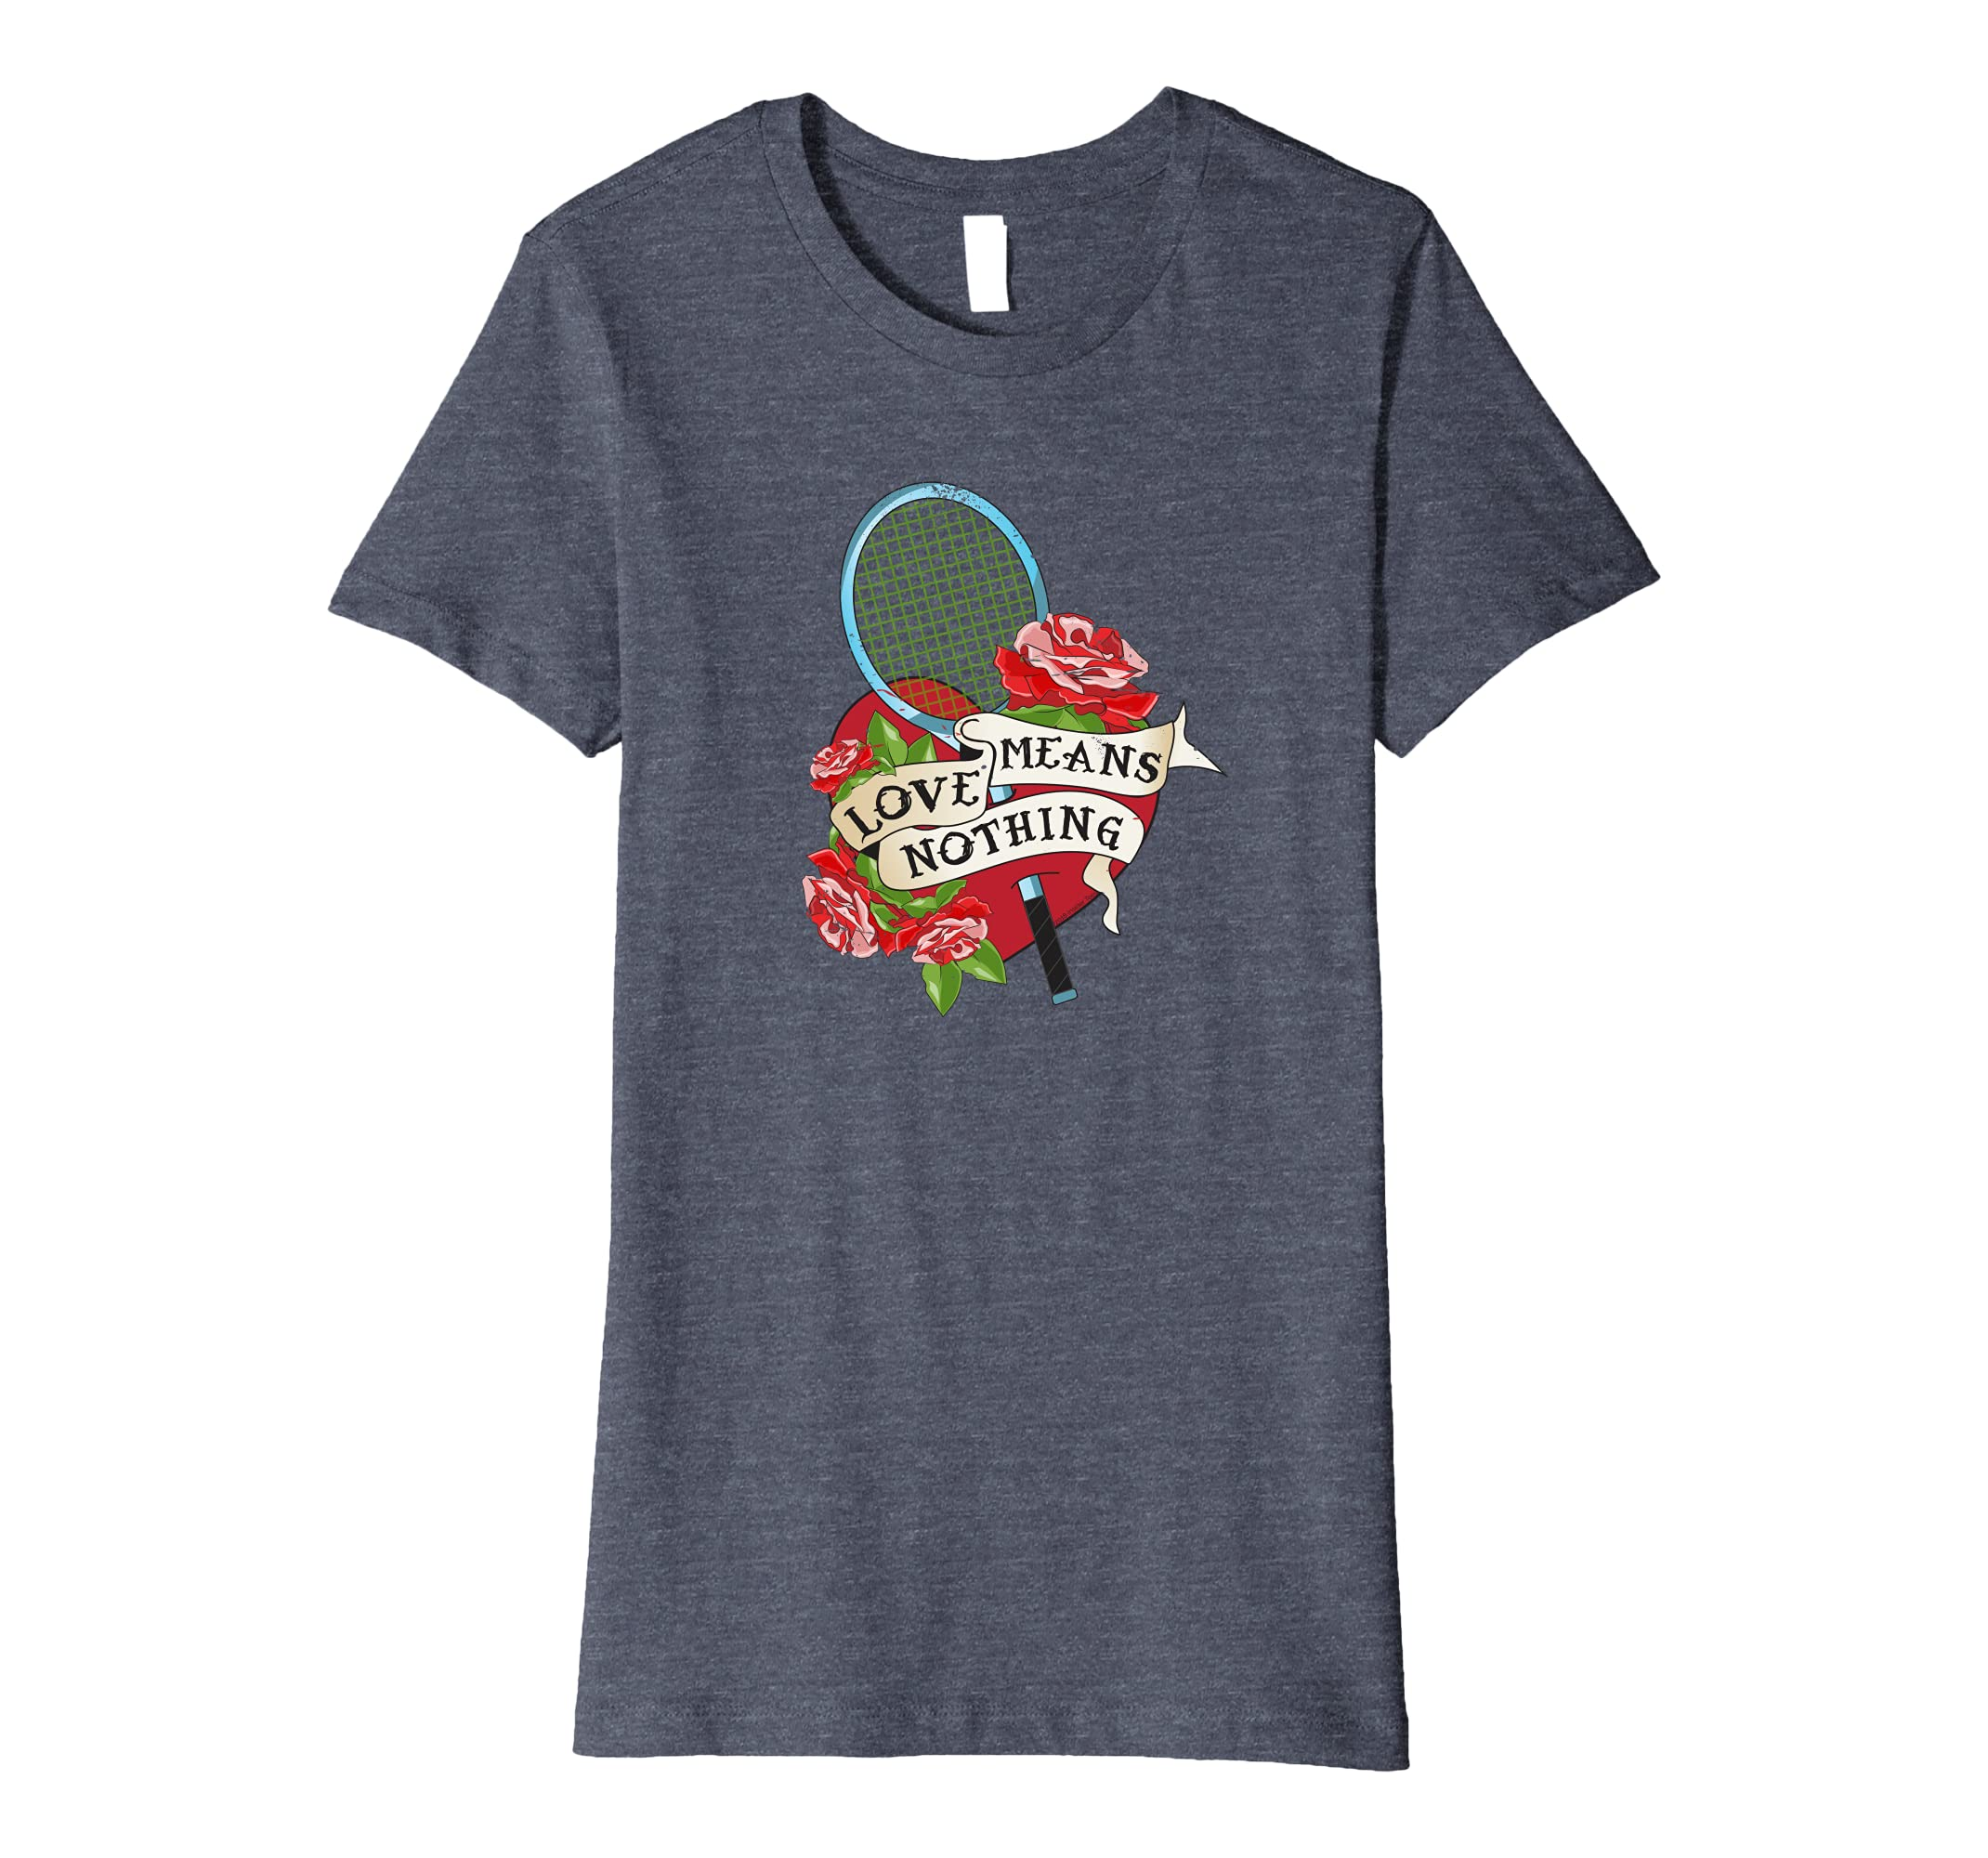 Amazon com: Love Means Nothing Funny Retro Tennis T-Shirt: Clothing